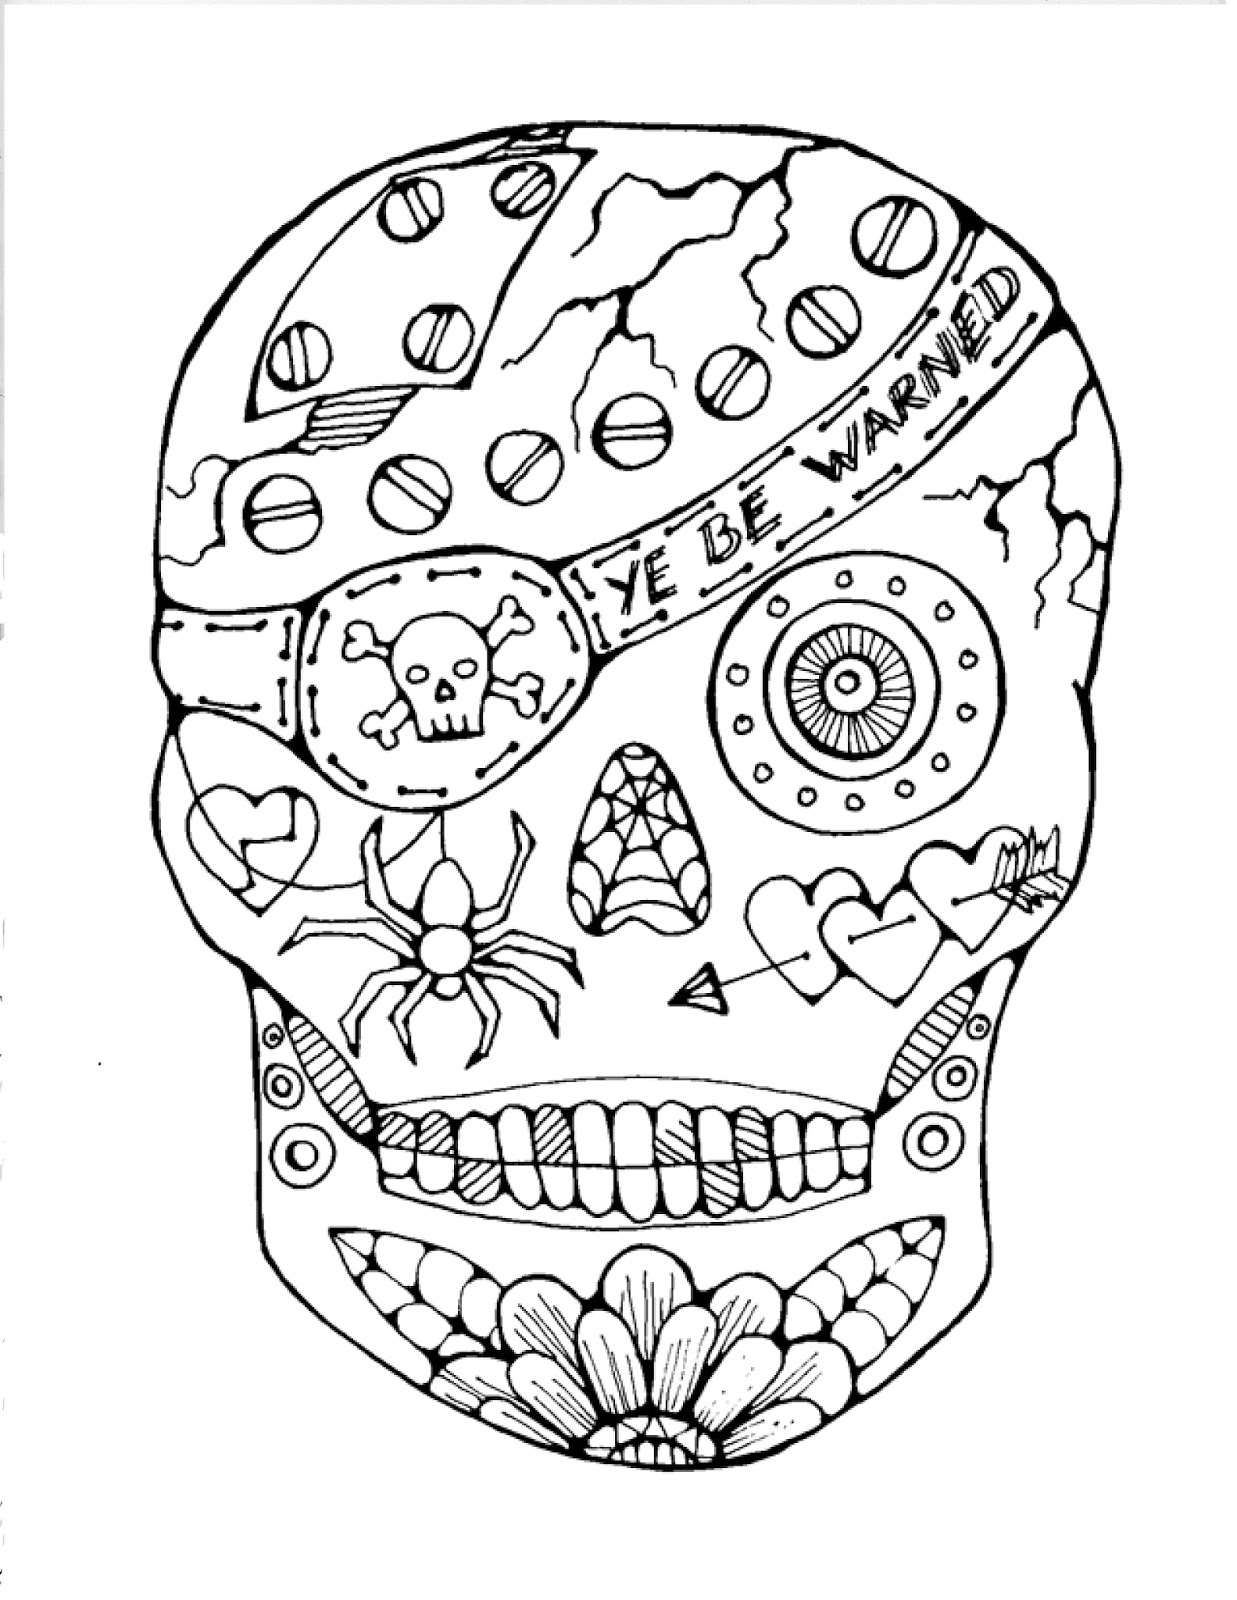 candy skull coloring pages hard coloring page of sugar skull to print for grown ups pages candy coloring skull